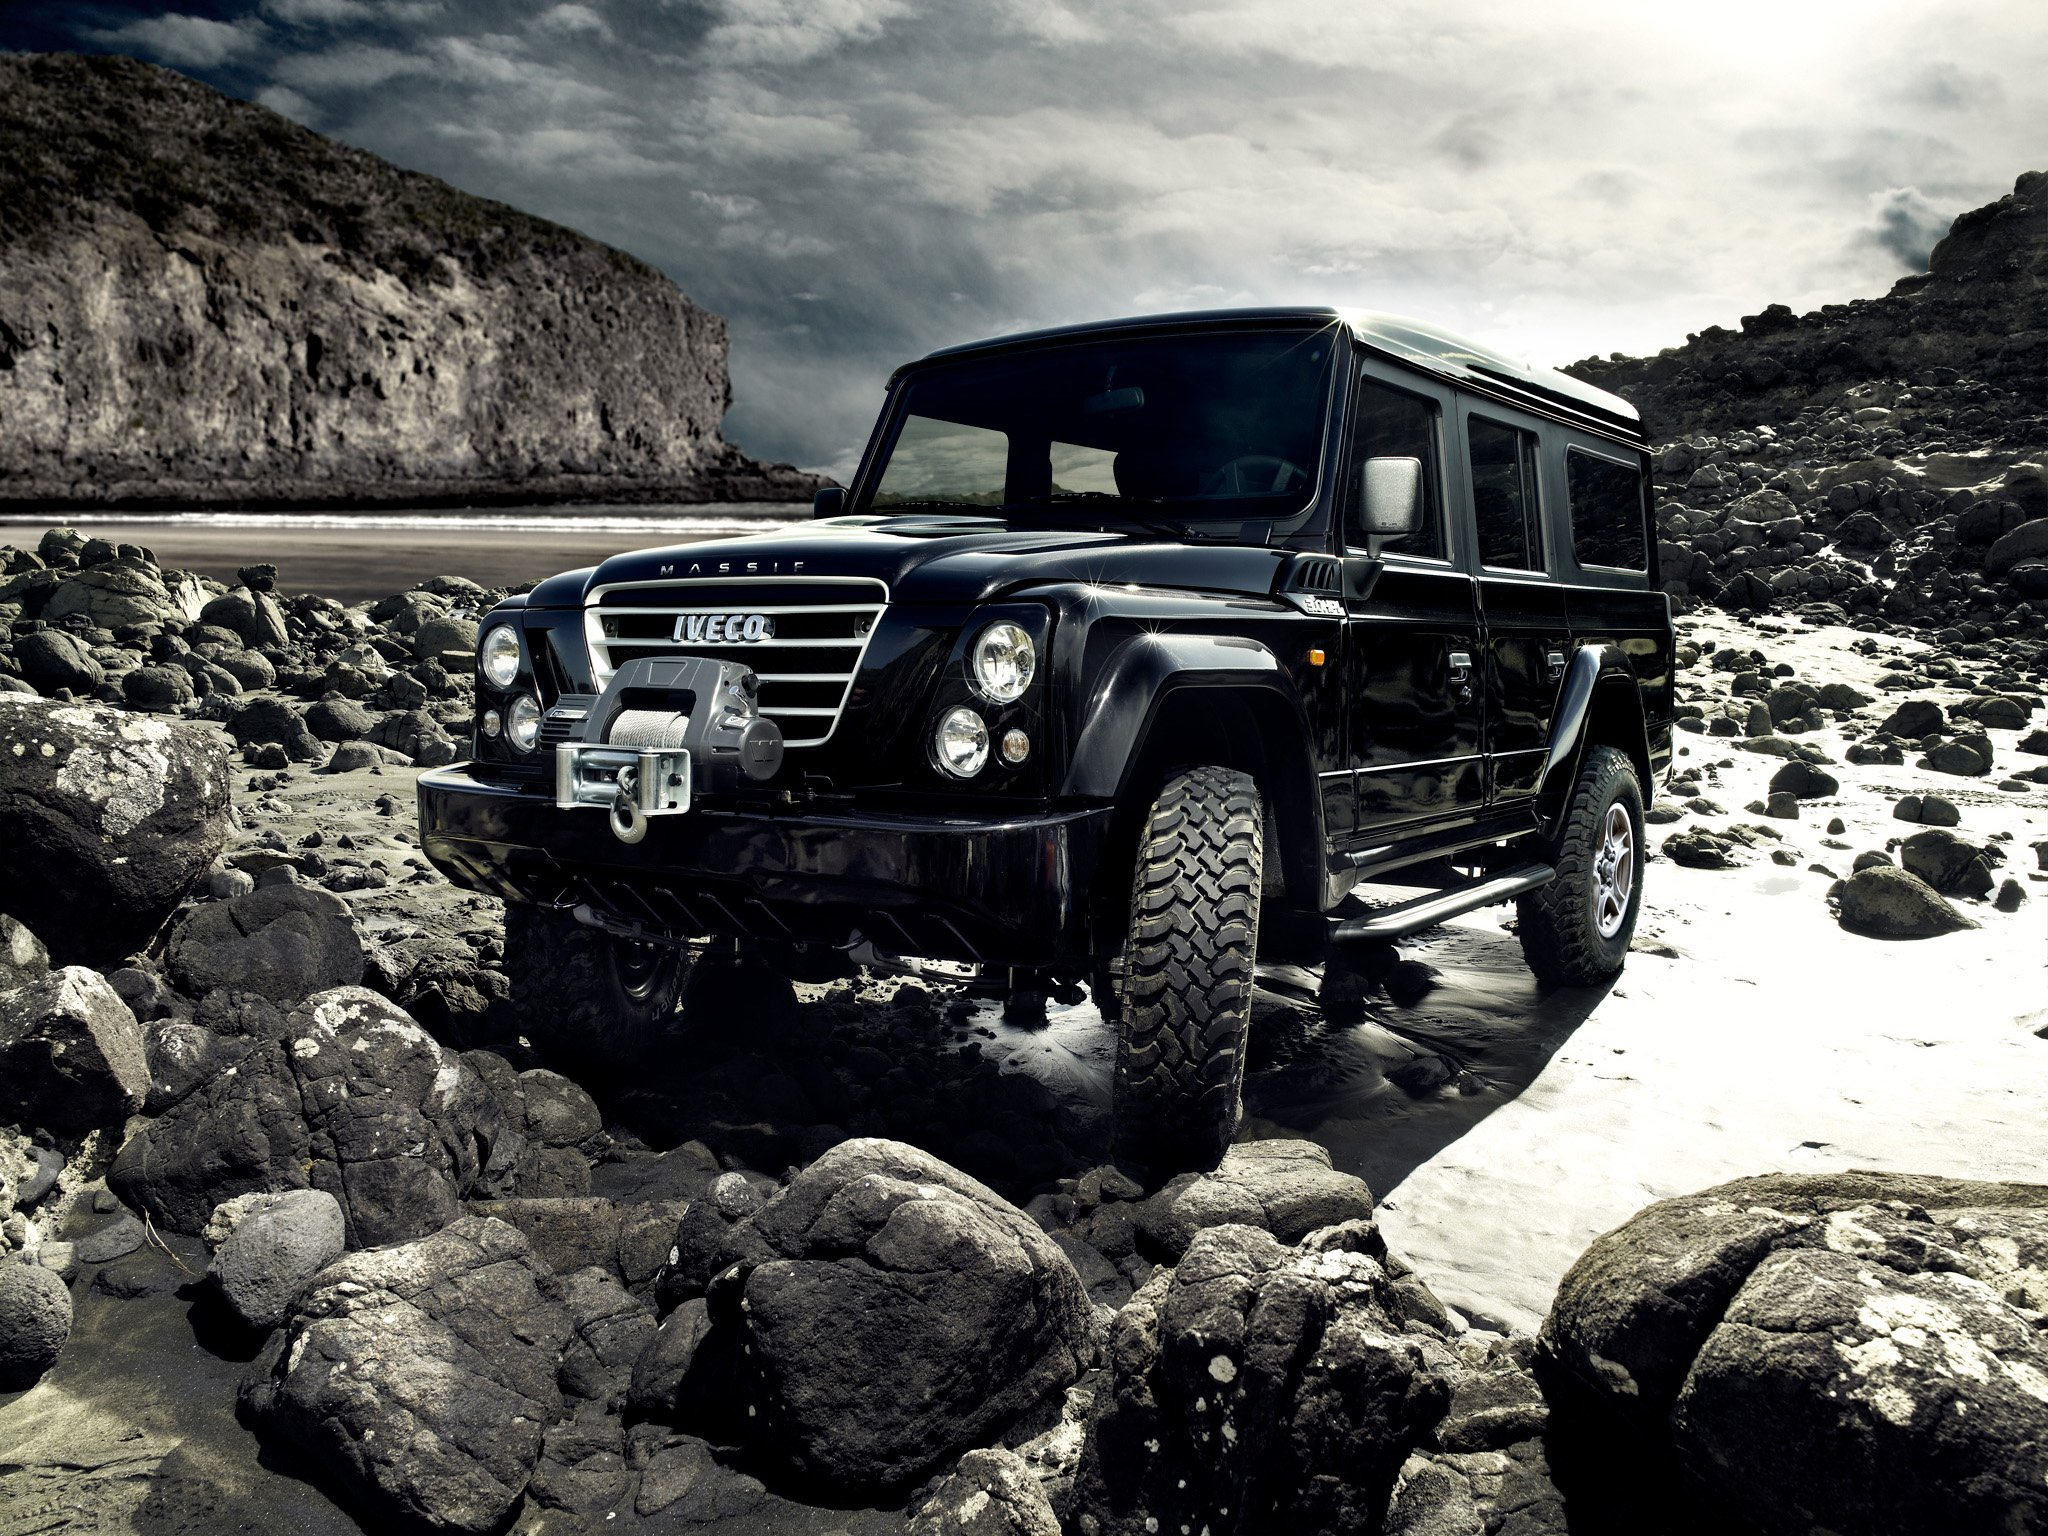 2007 11 iveco massif 5 door suv 4x4 awd fiat land rover defender ew wallpaper 2048x1536. Black Bedroom Furniture Sets. Home Design Ideas